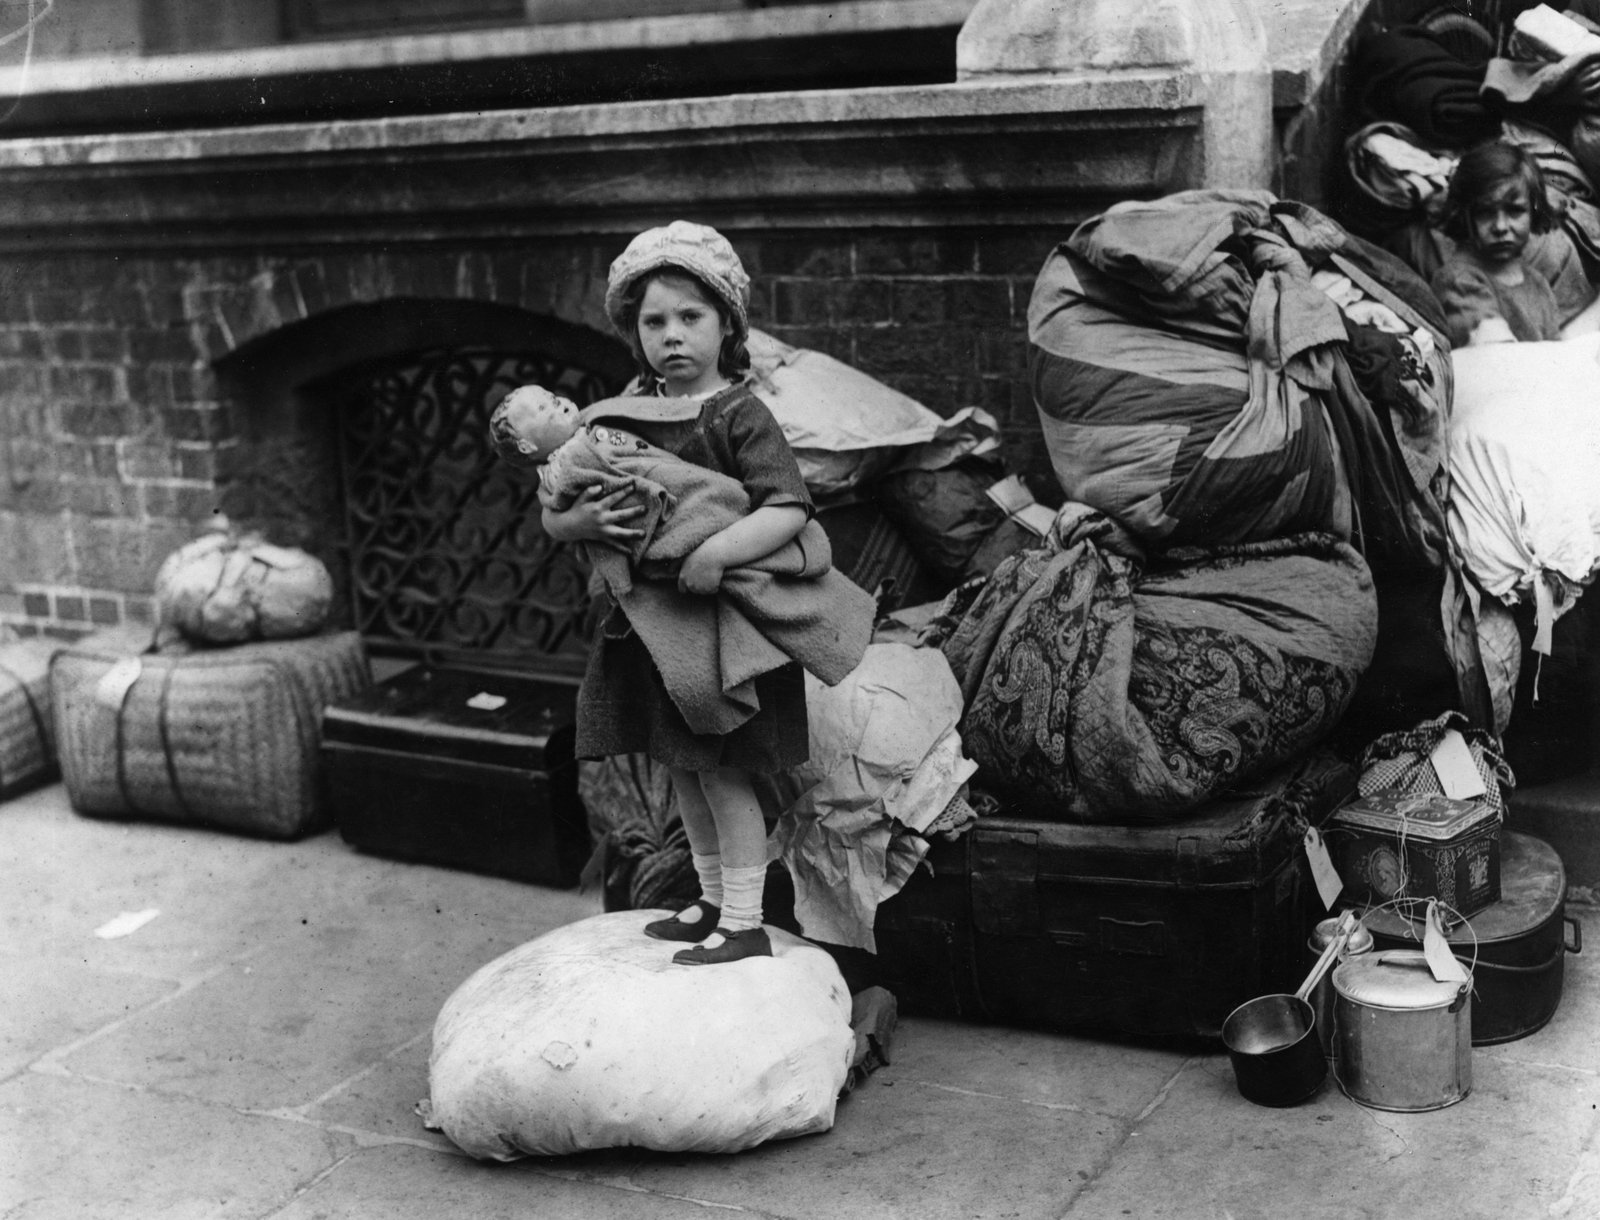 Image - A Catholic child arrives in Dublin in June 1922, having fled violence in Belfast Photo: Topical Press Agency/Getty Images